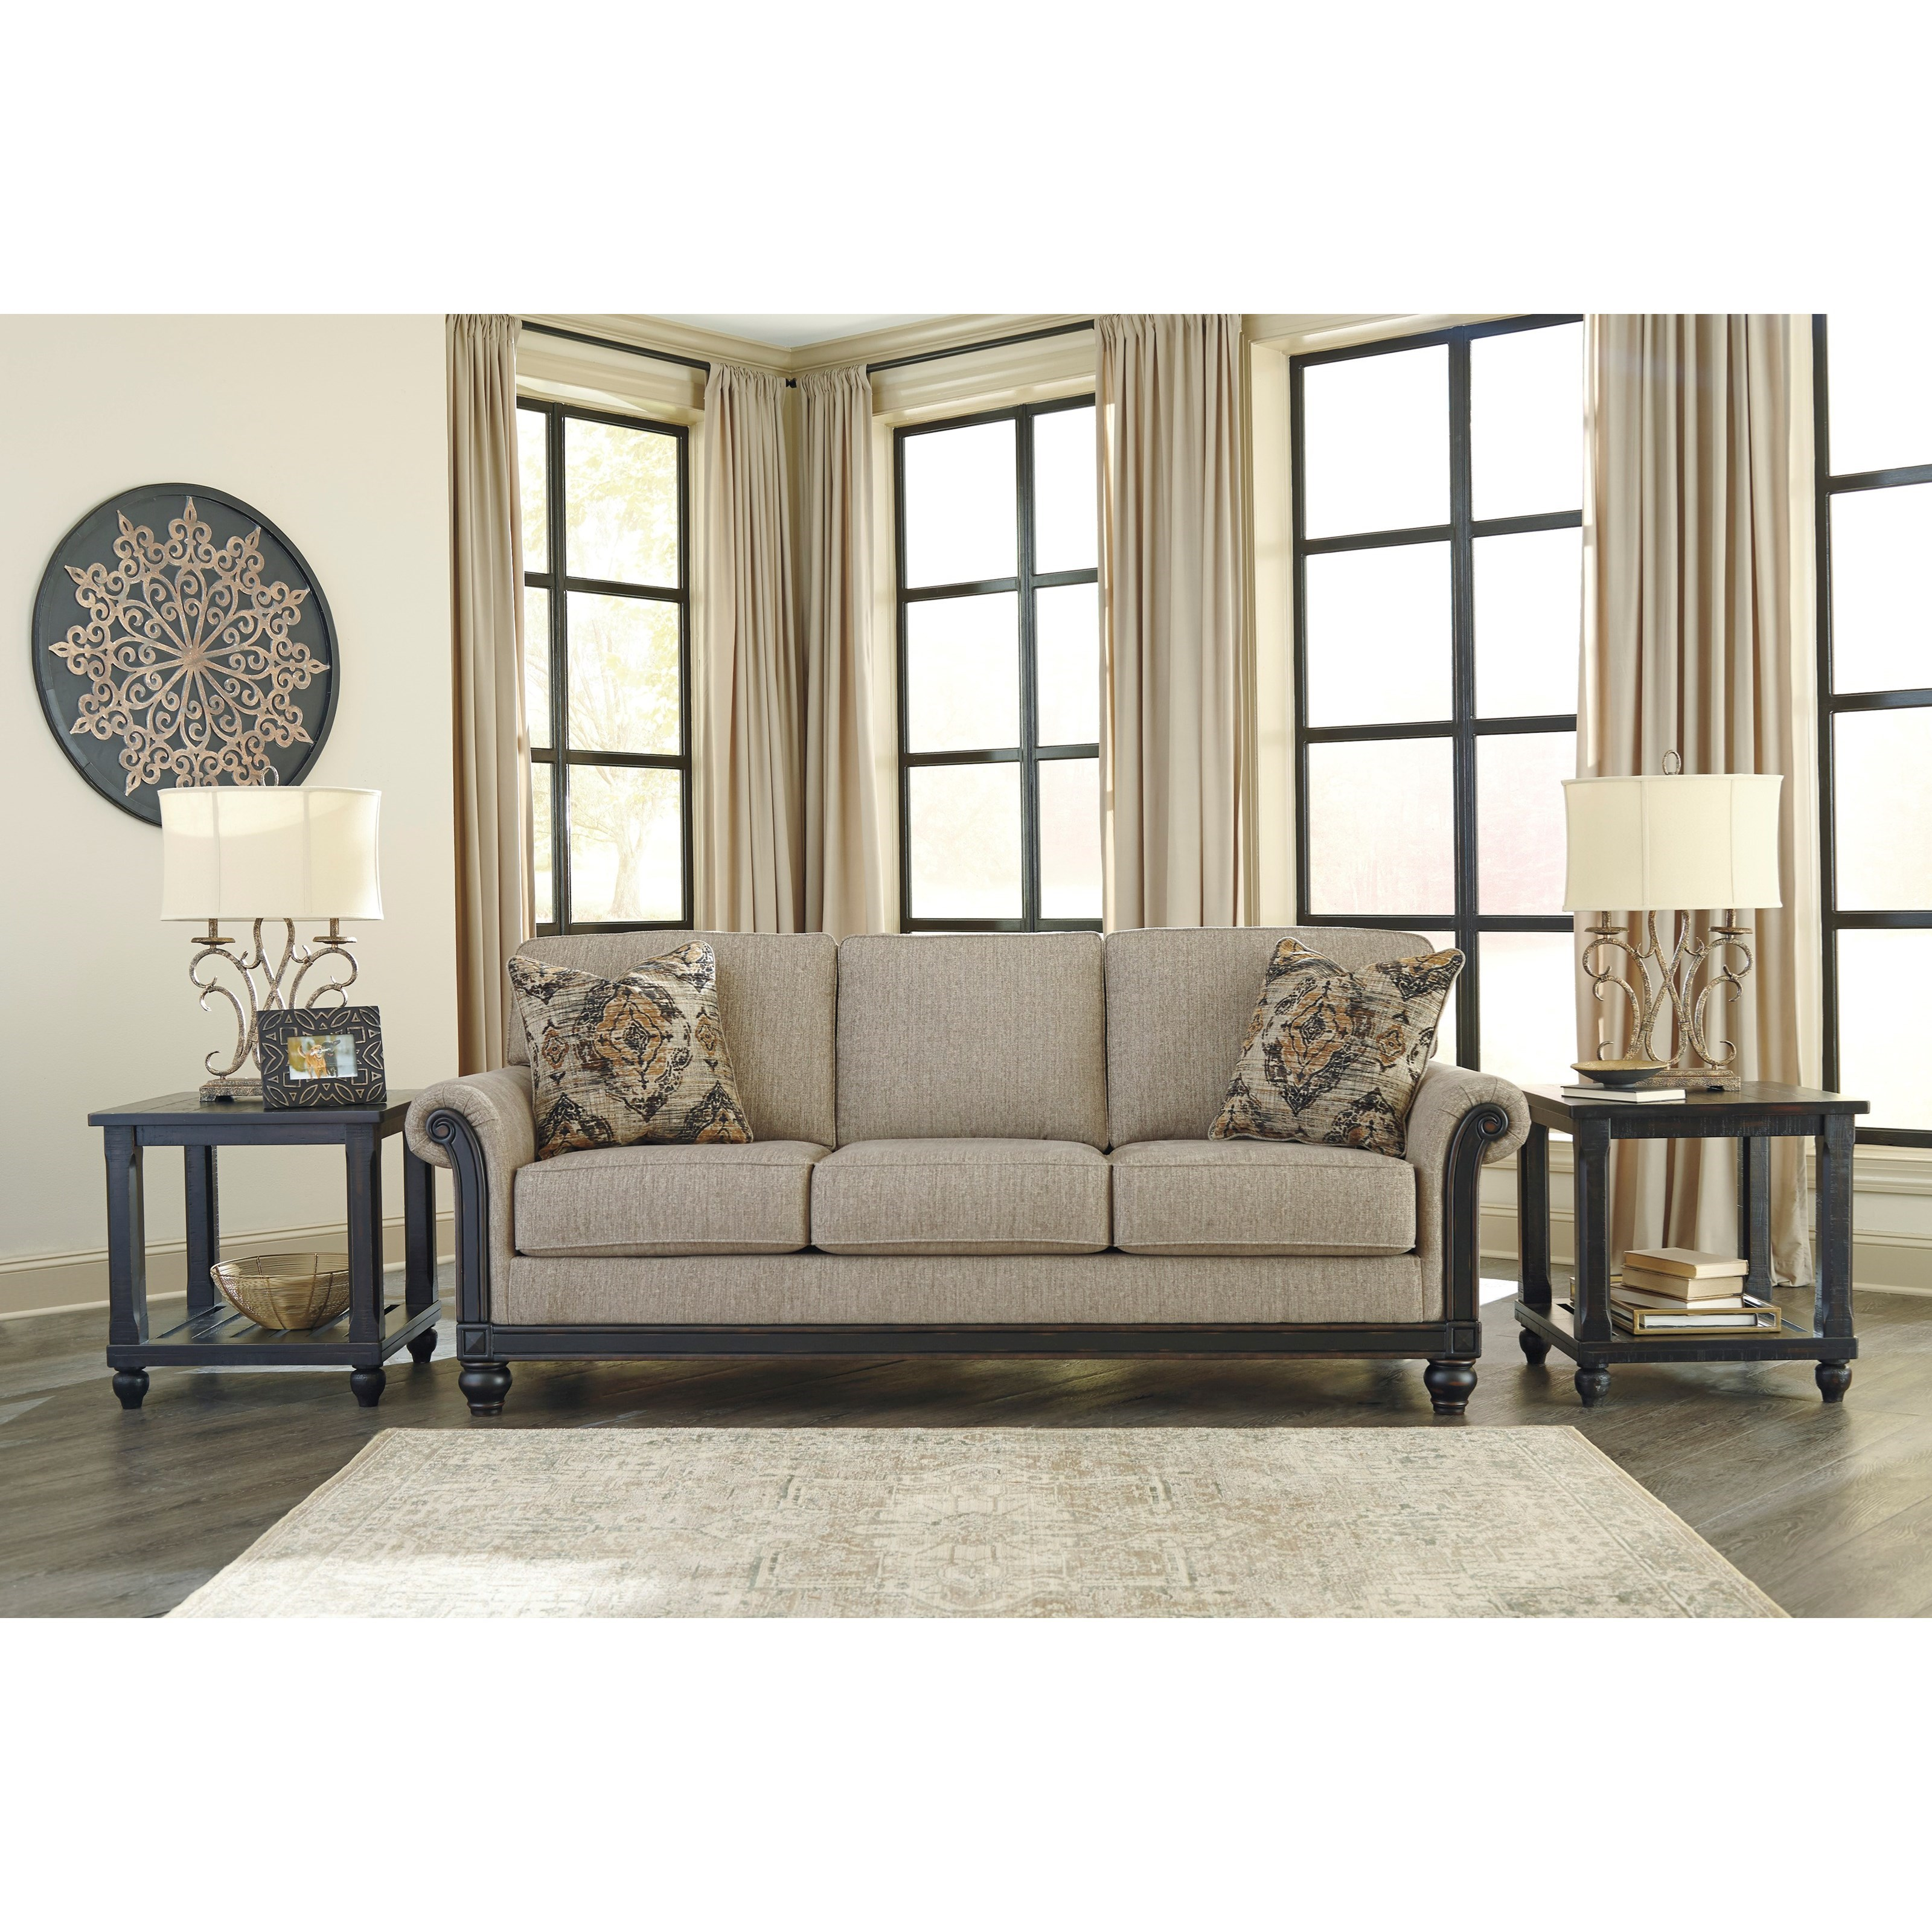 Transitional Sofa with Rolled Arms & Showood Trim in Dark